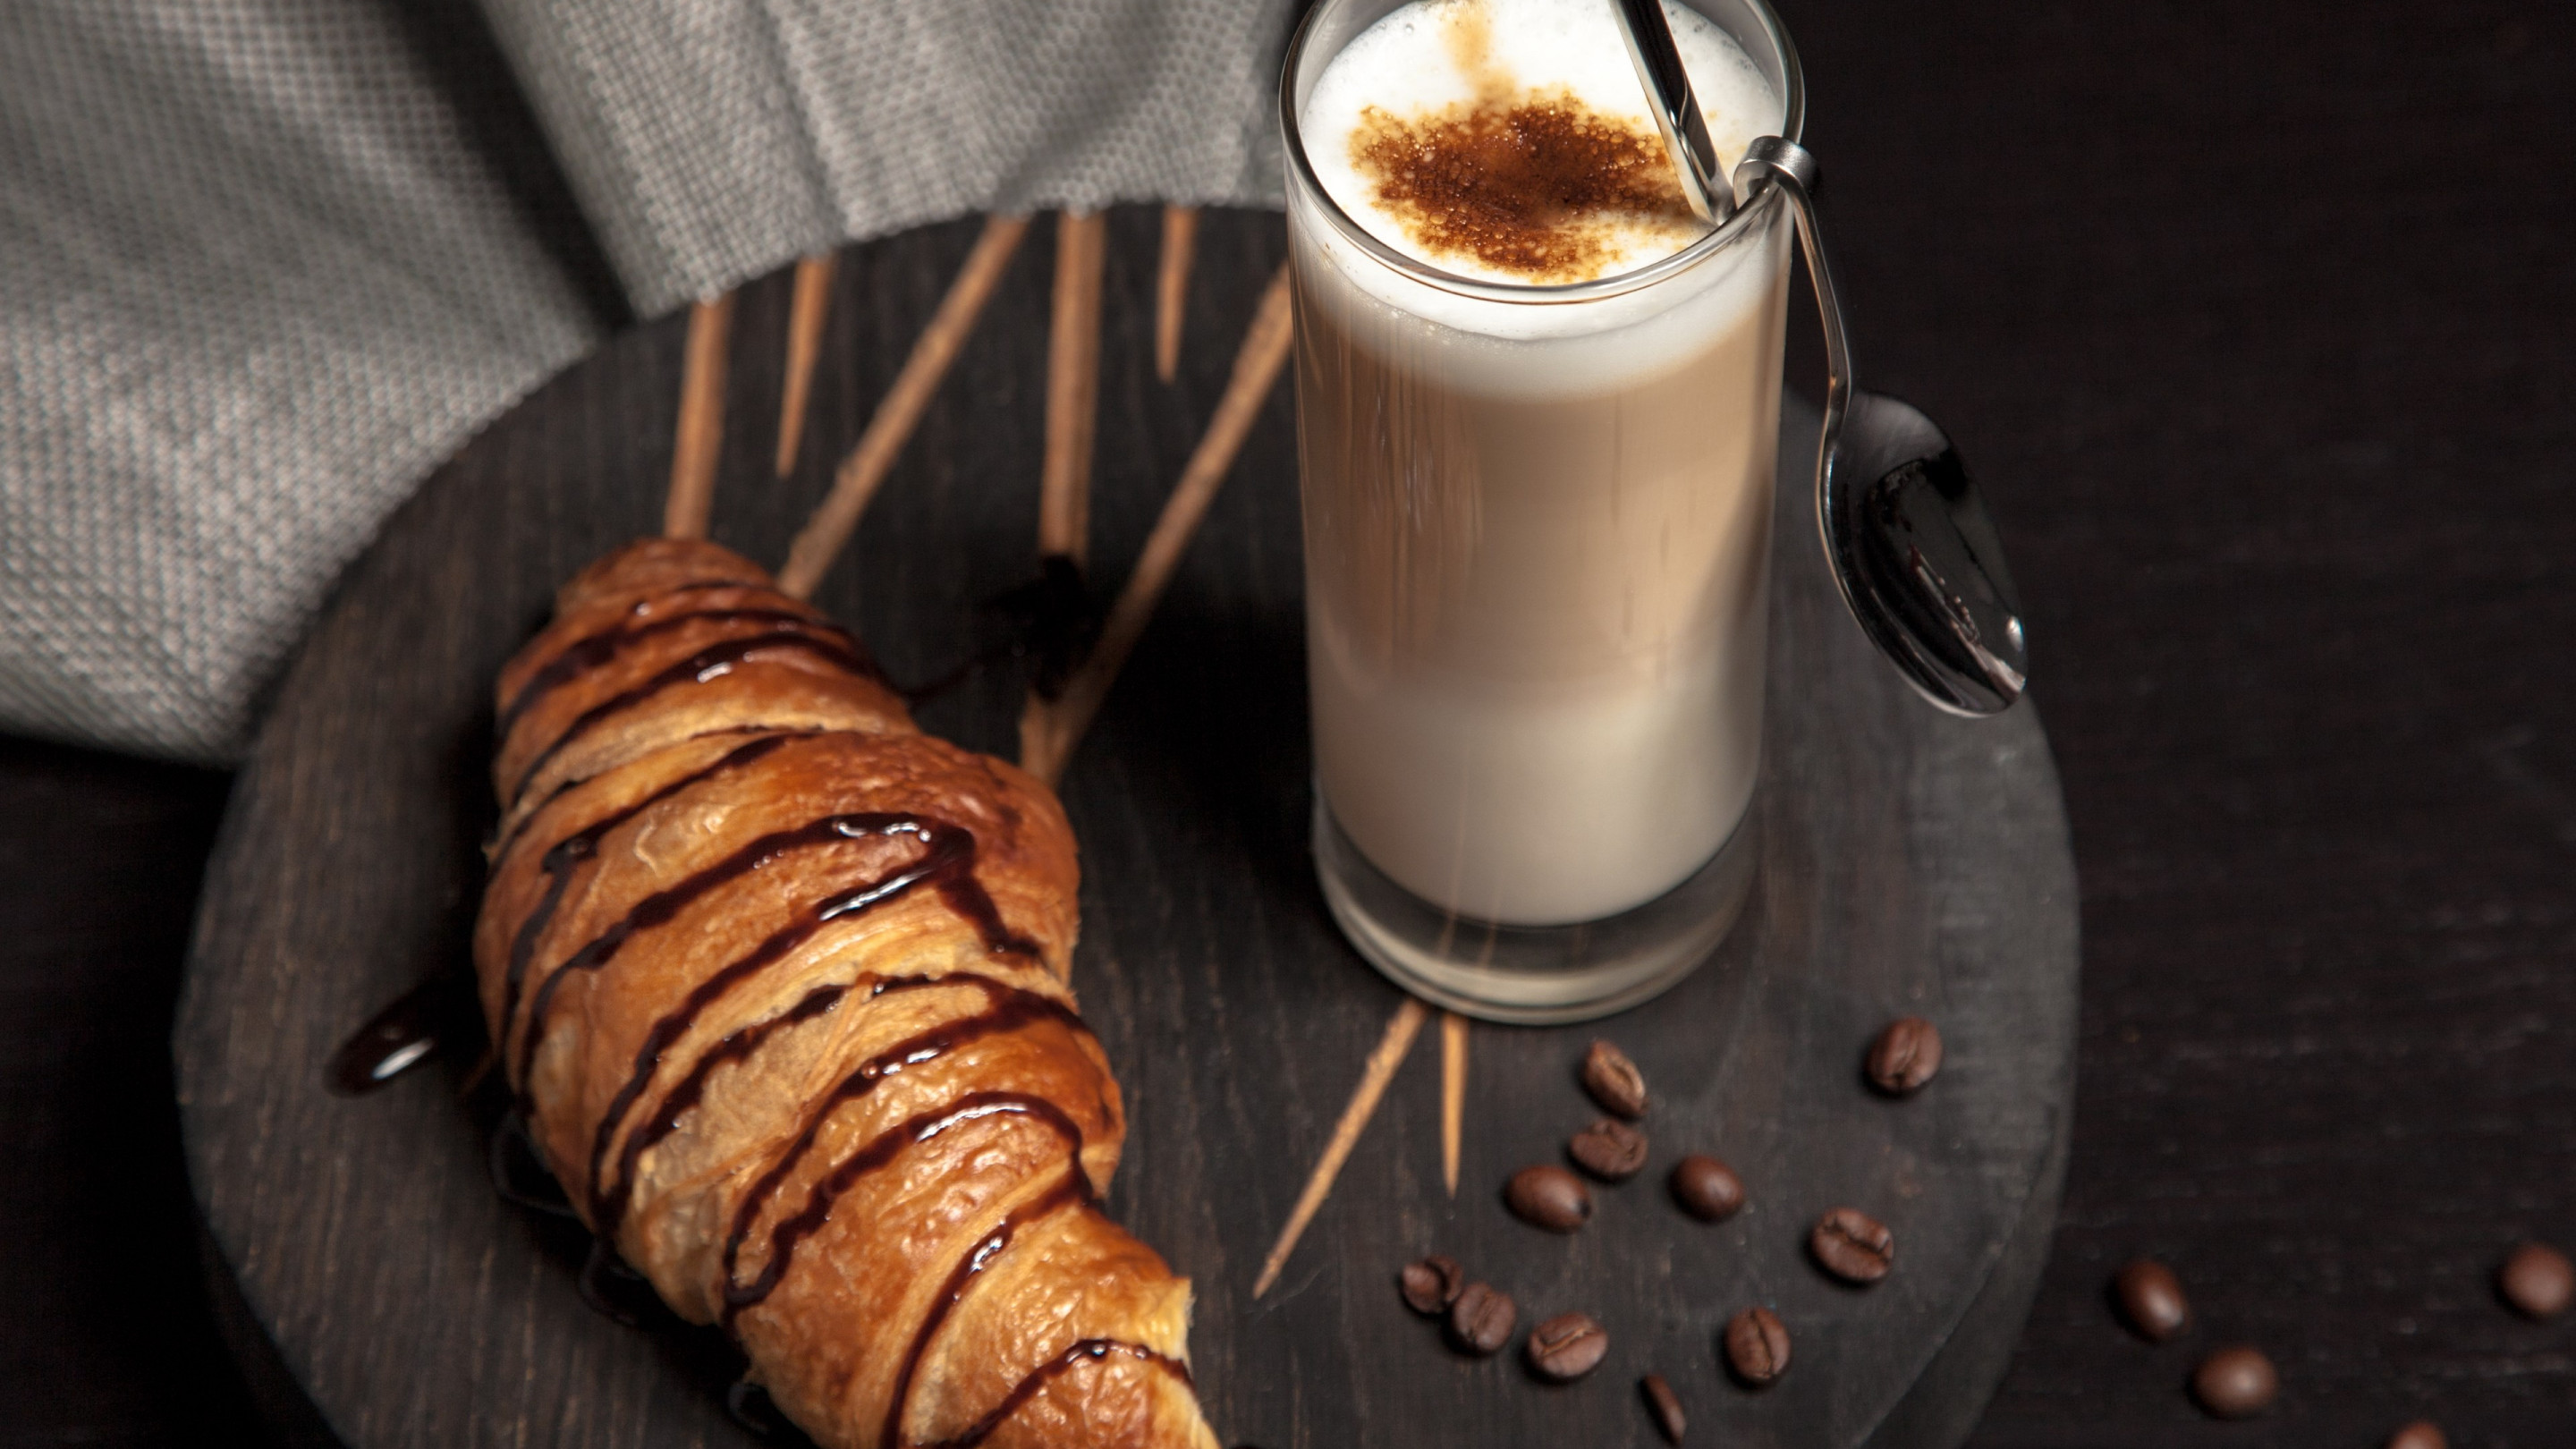 Cappuccino and chocolate croissant wallpaper 2880x1620